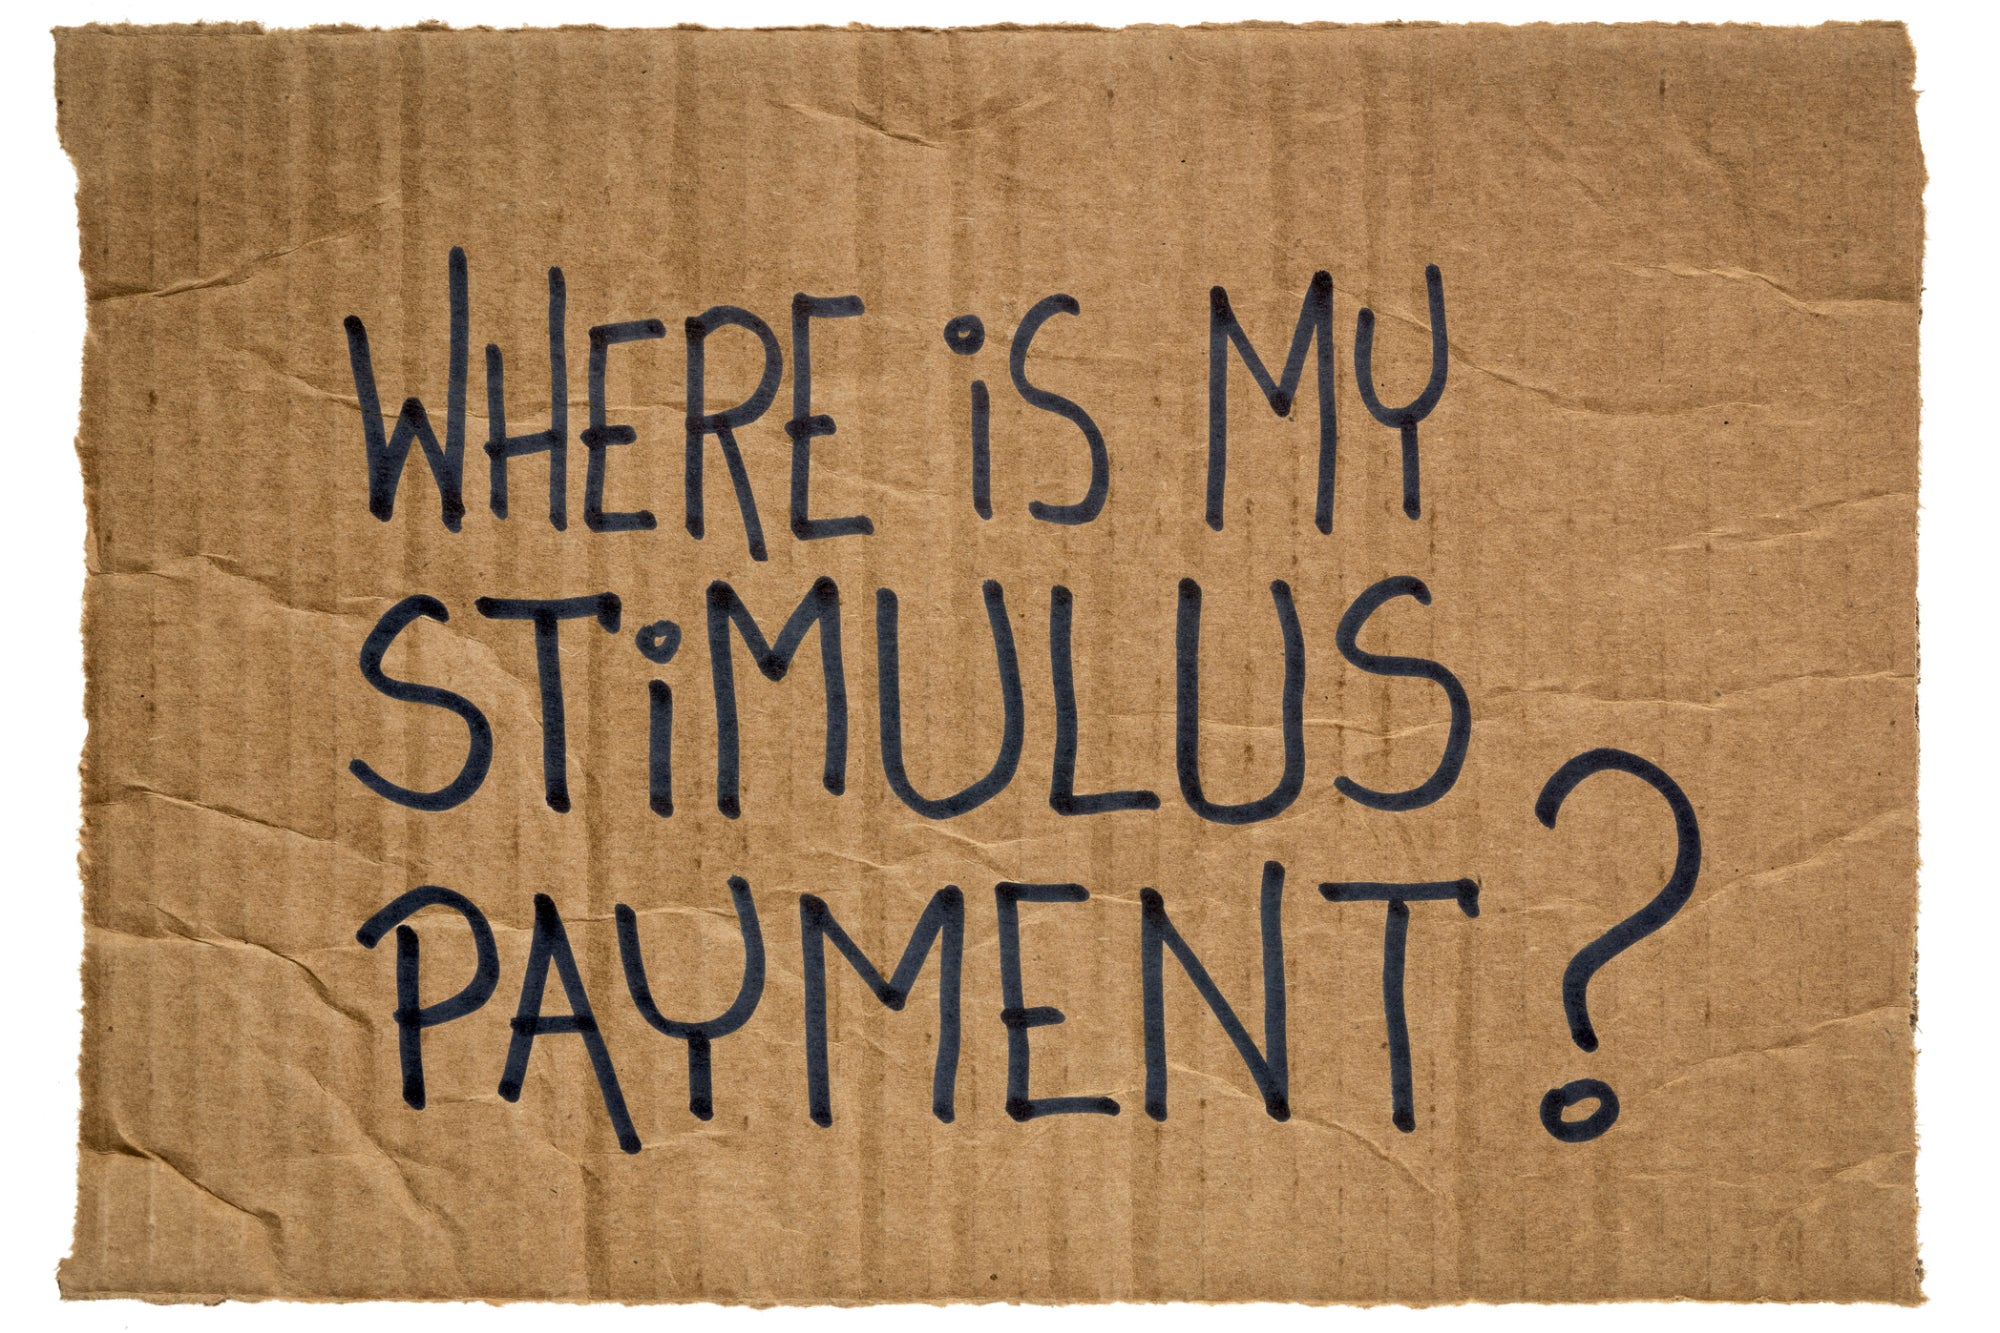 Who You Gonna Call for An Update On Your Stimulus Check? The IRS, At Last.